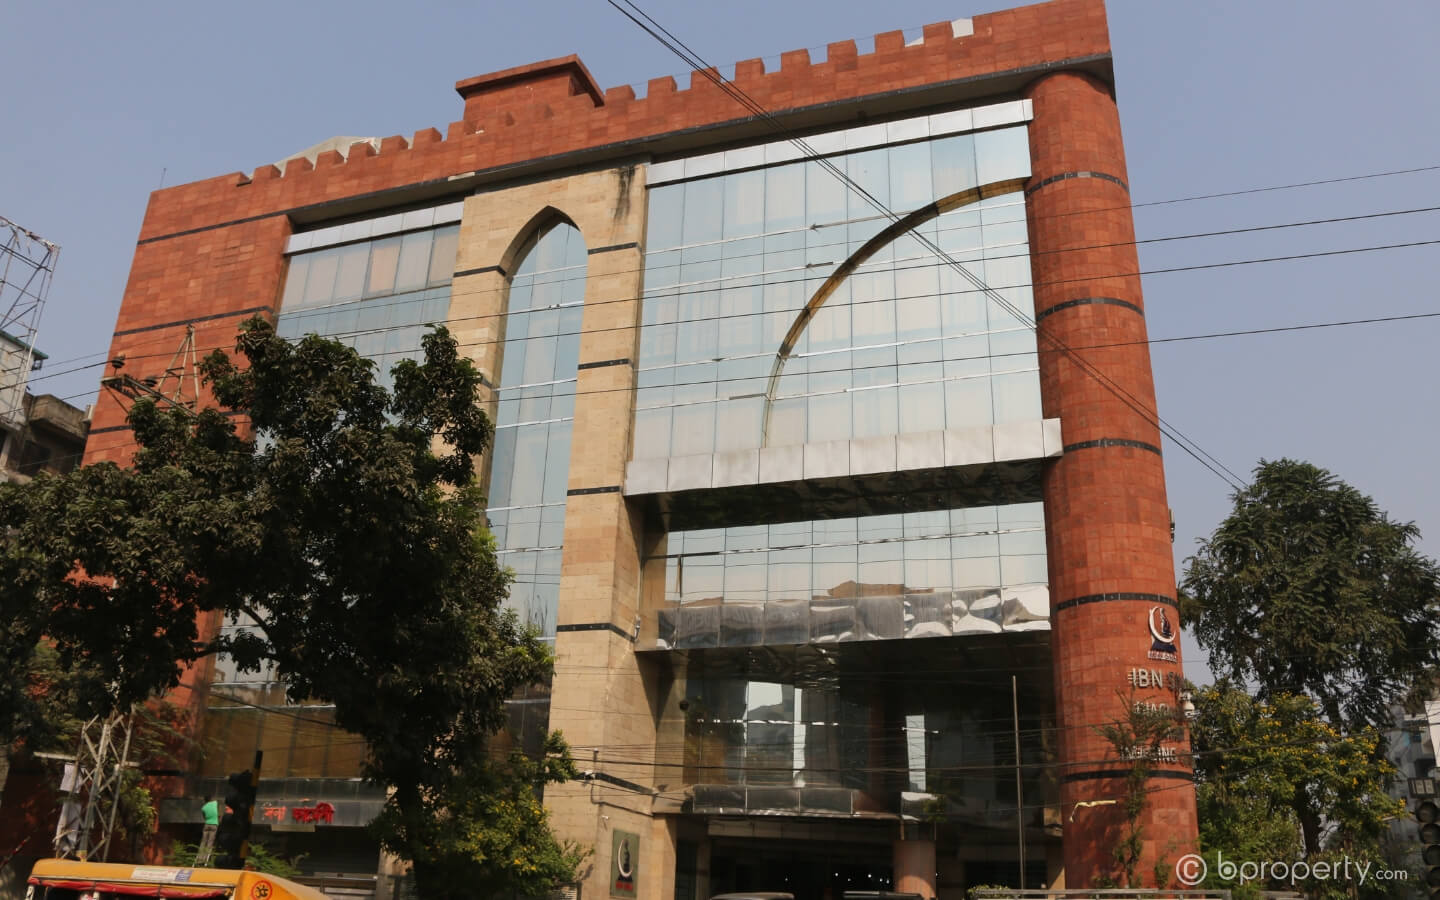 A number of prominent medical centers in Dhaka are present in Dhanmondi